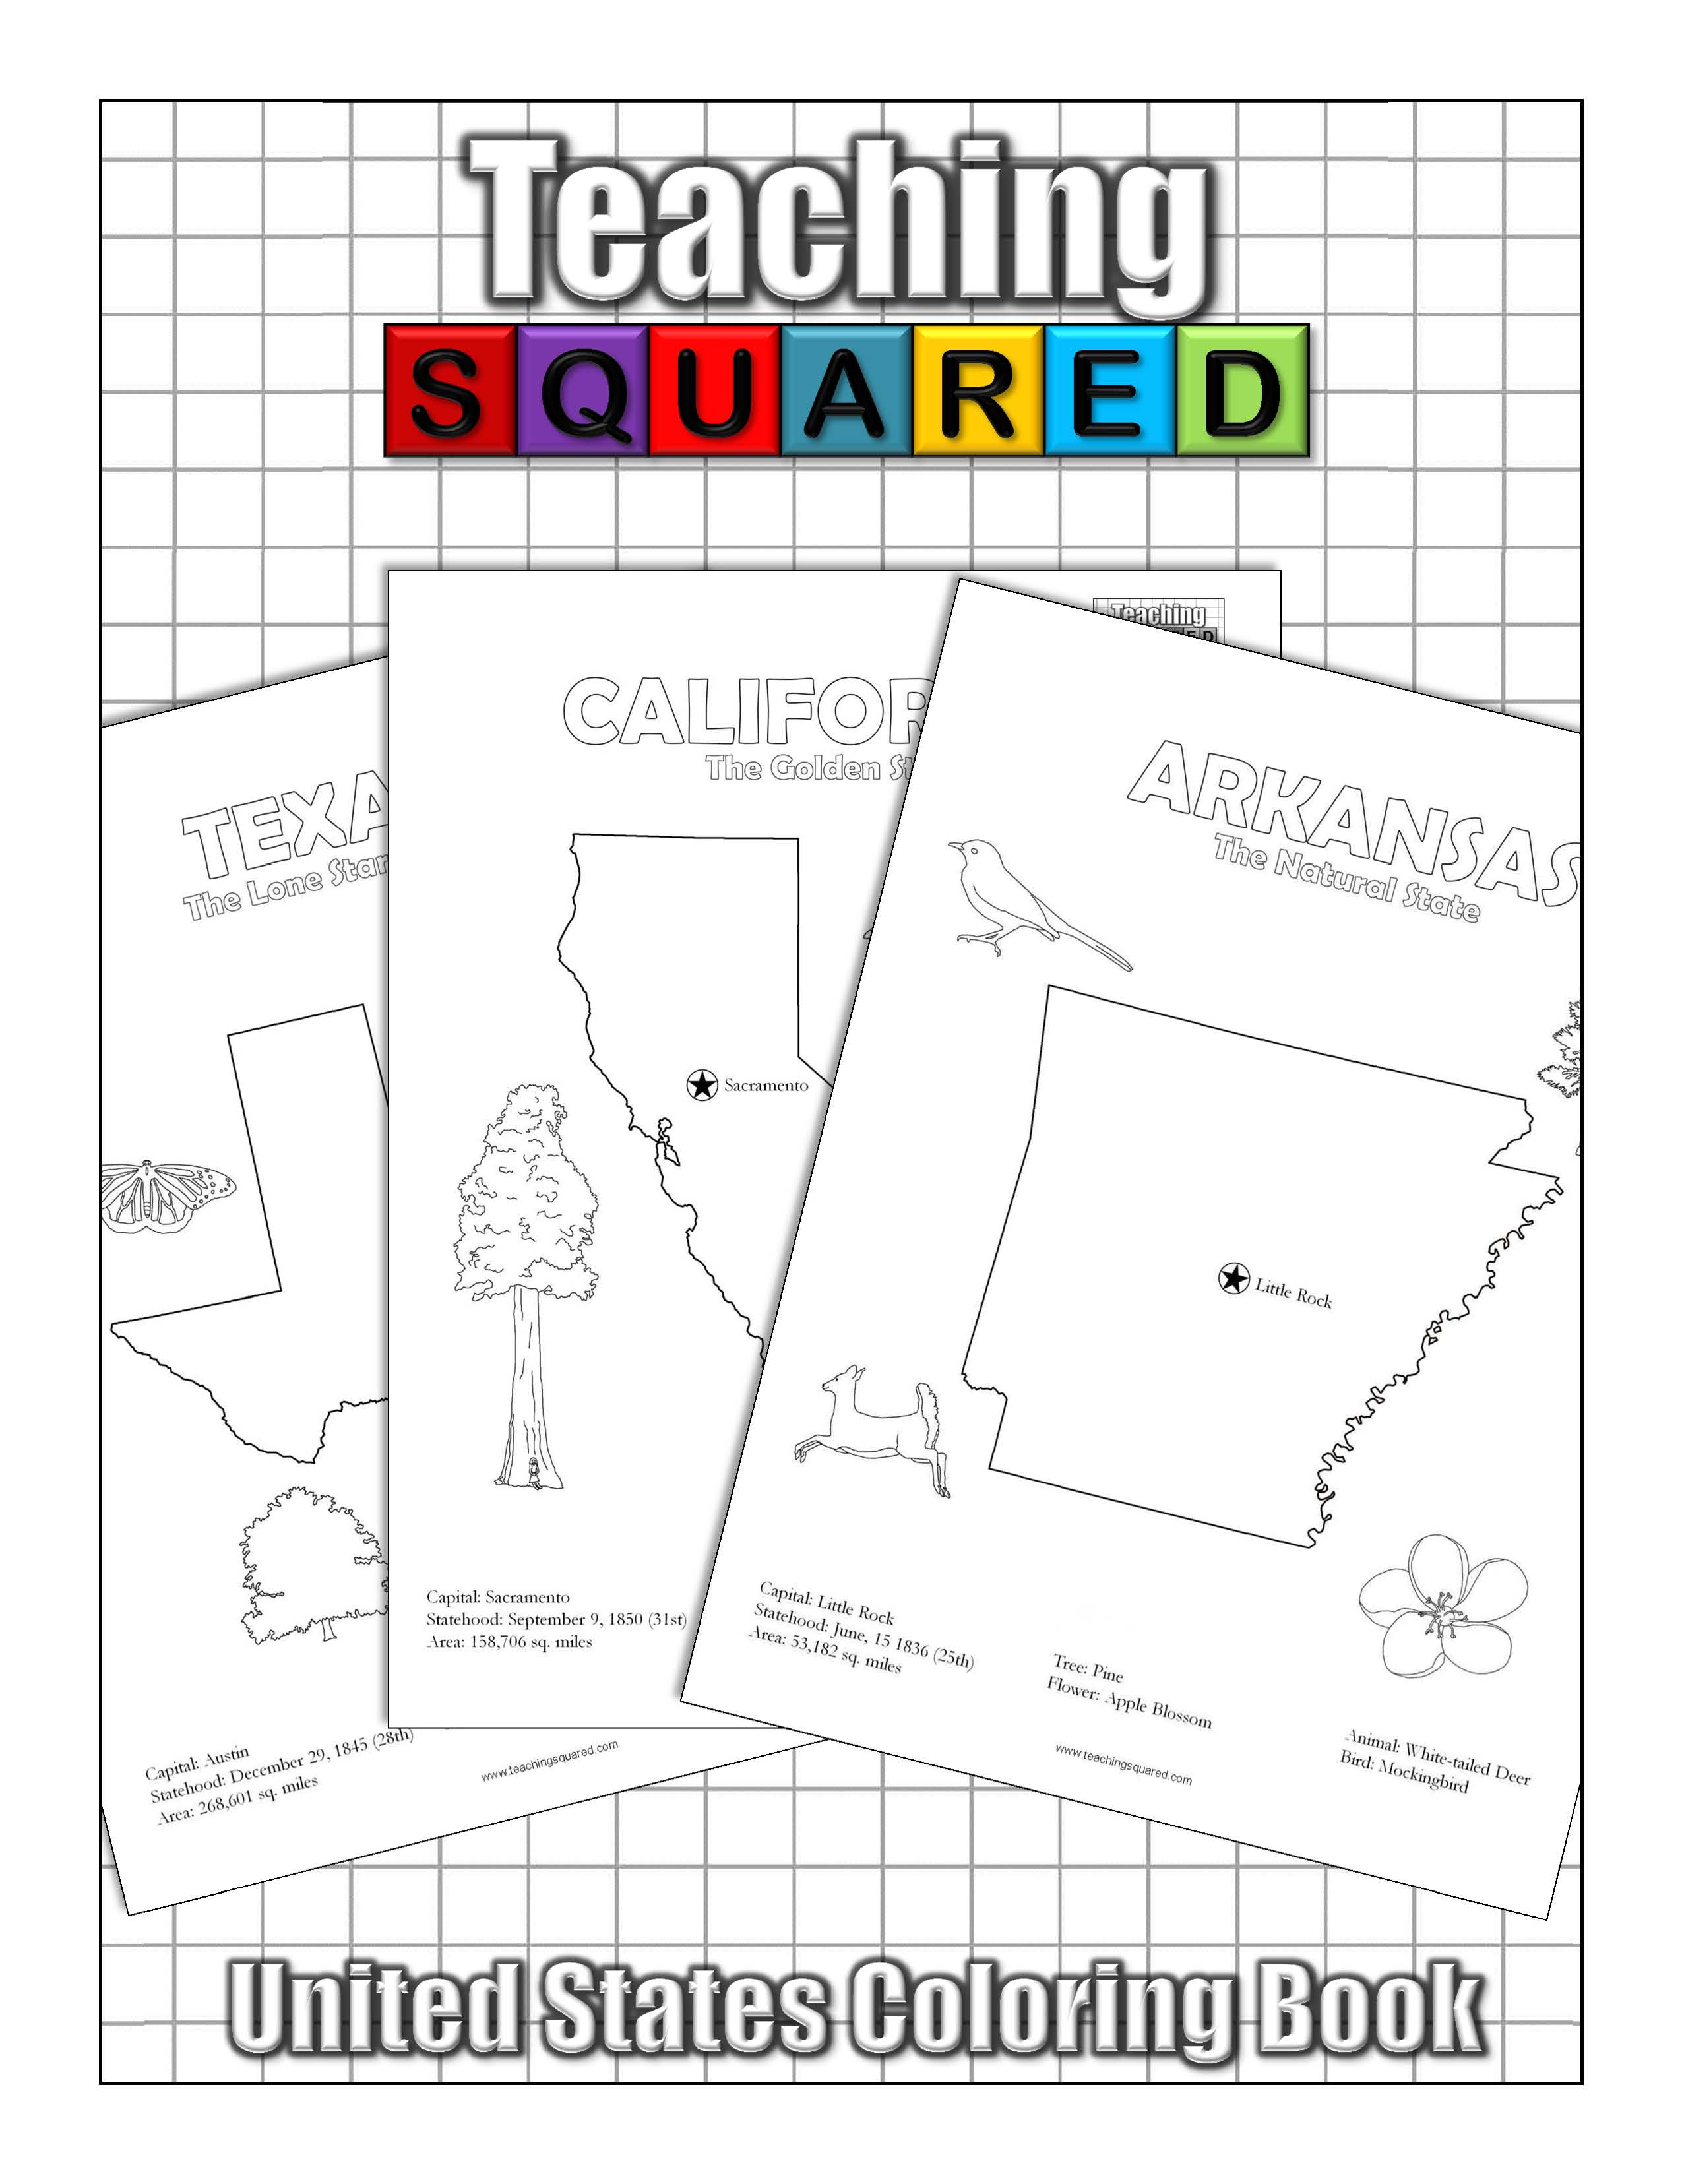 United States Coloring Book - Teaching Squared